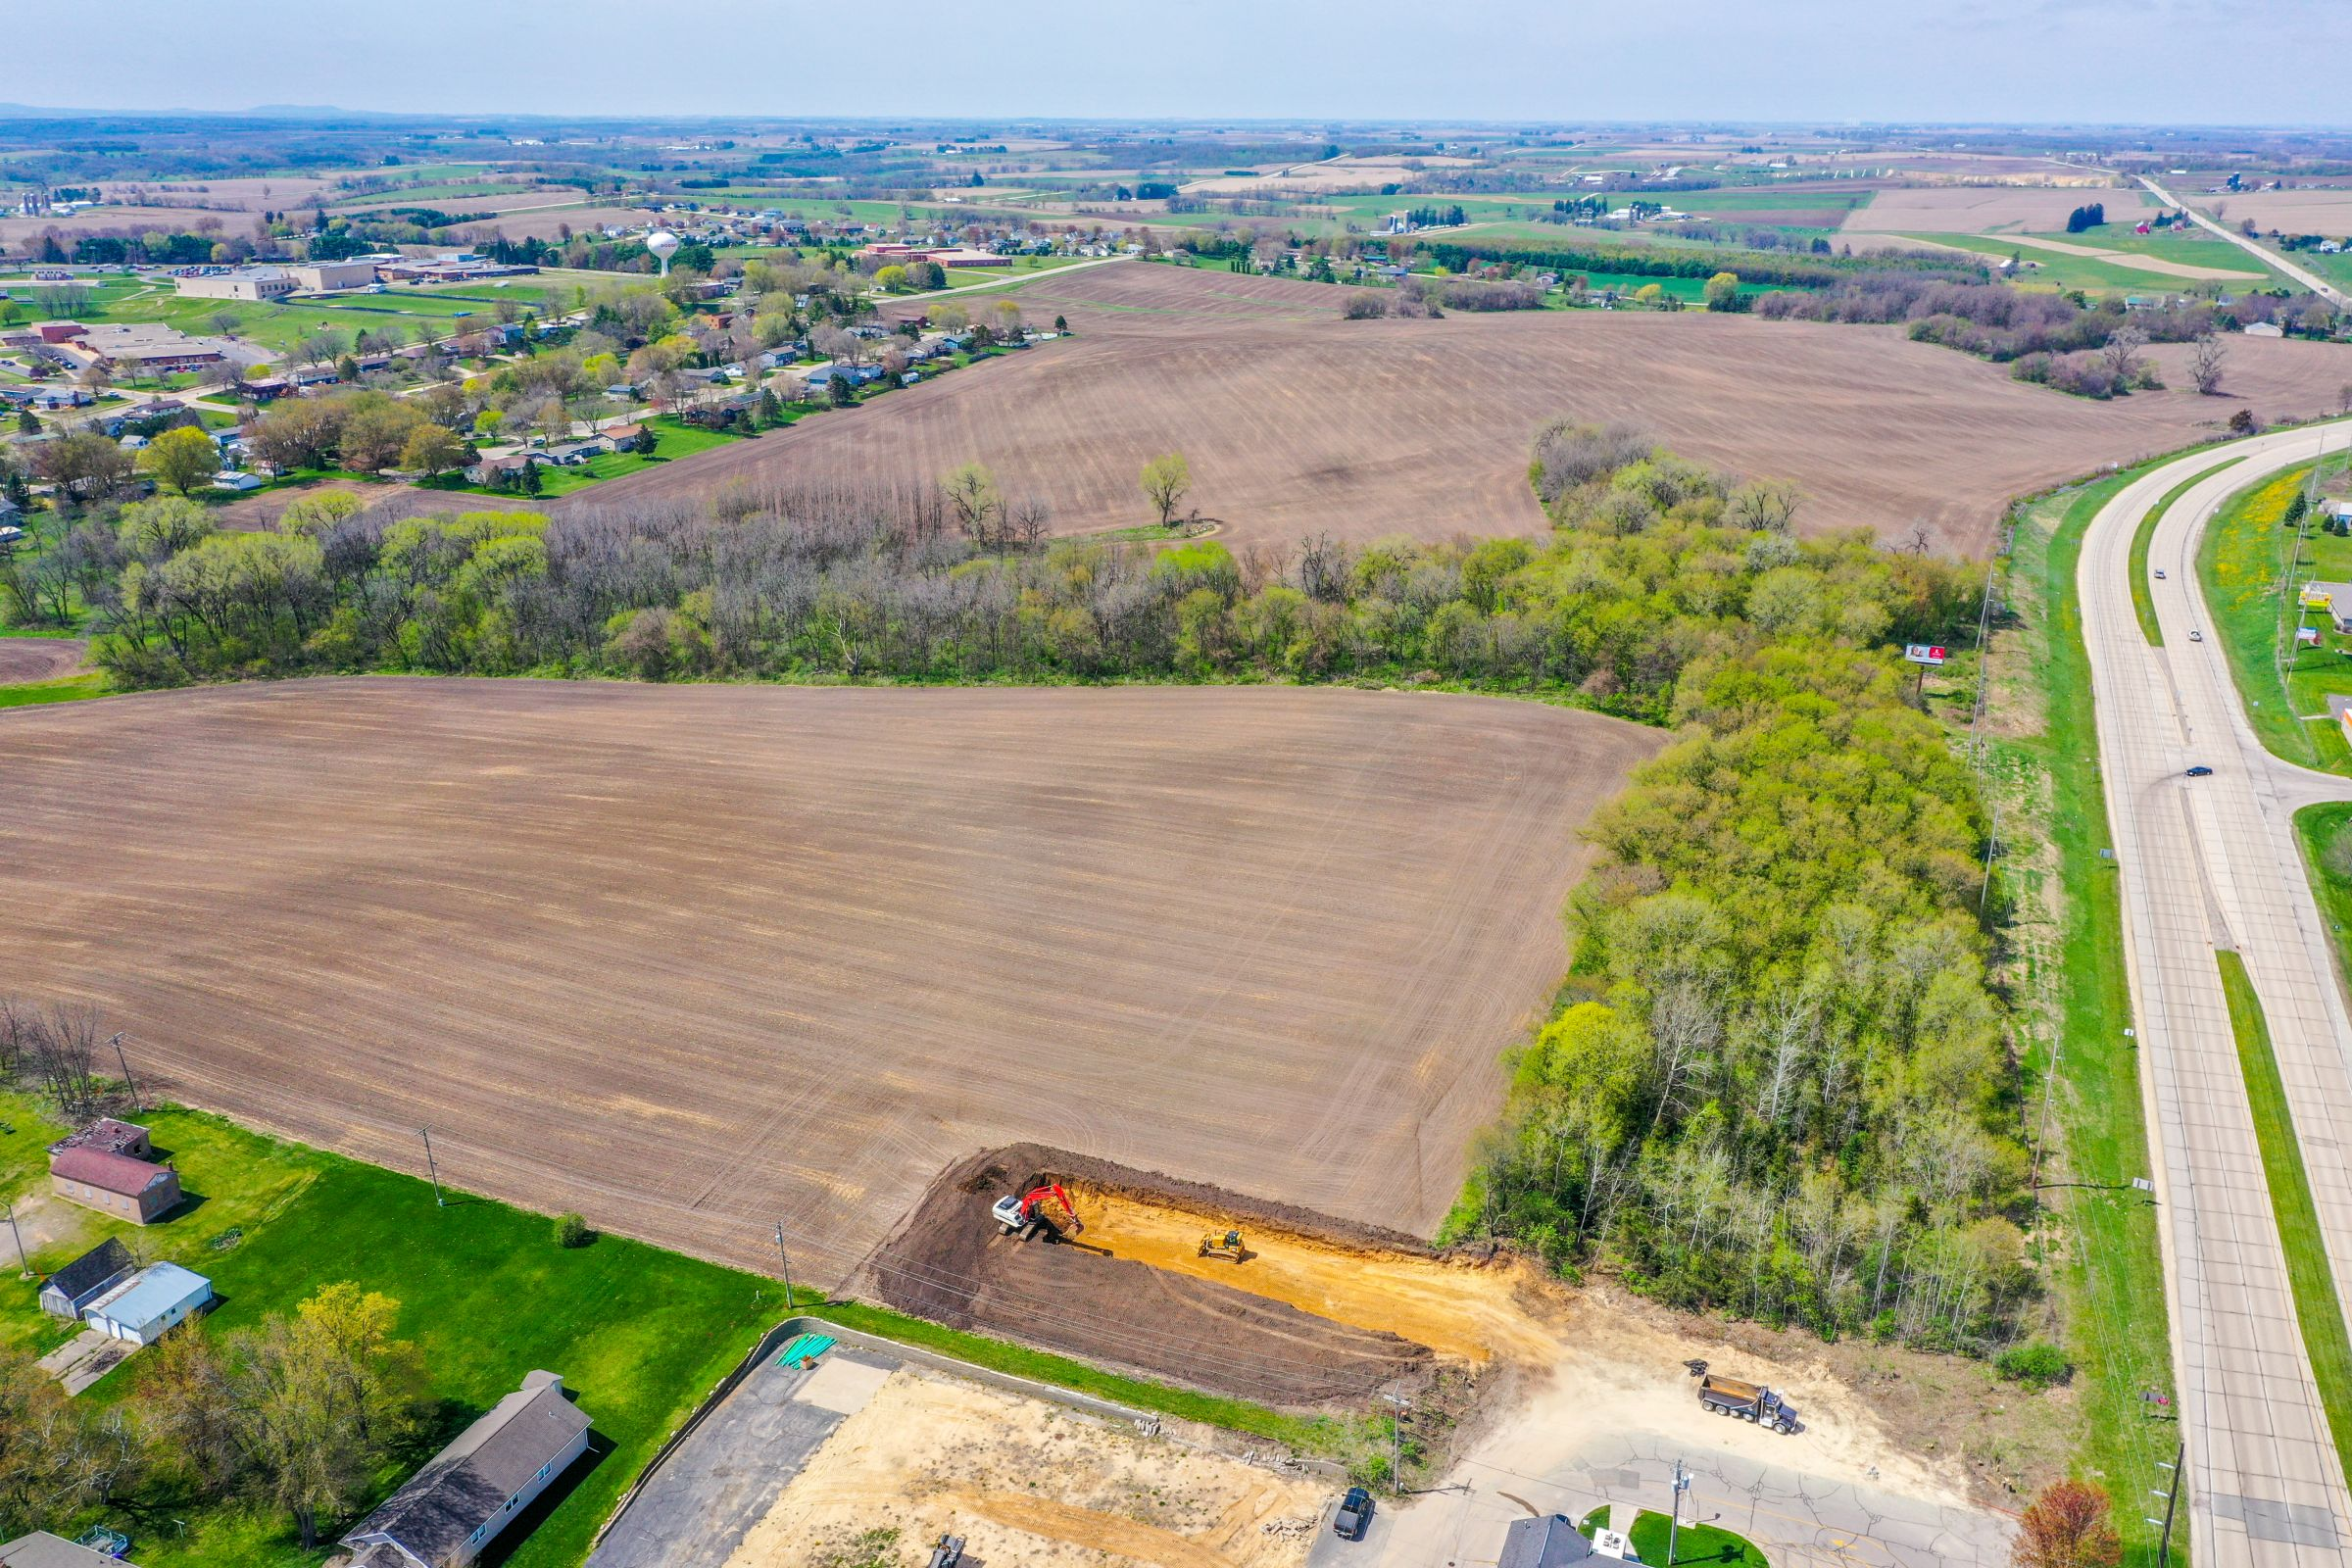 development-land-commercial-iowa-county-wisconsin-152-acres-listing-number-15474-3-2021-05-18-164826.jpg